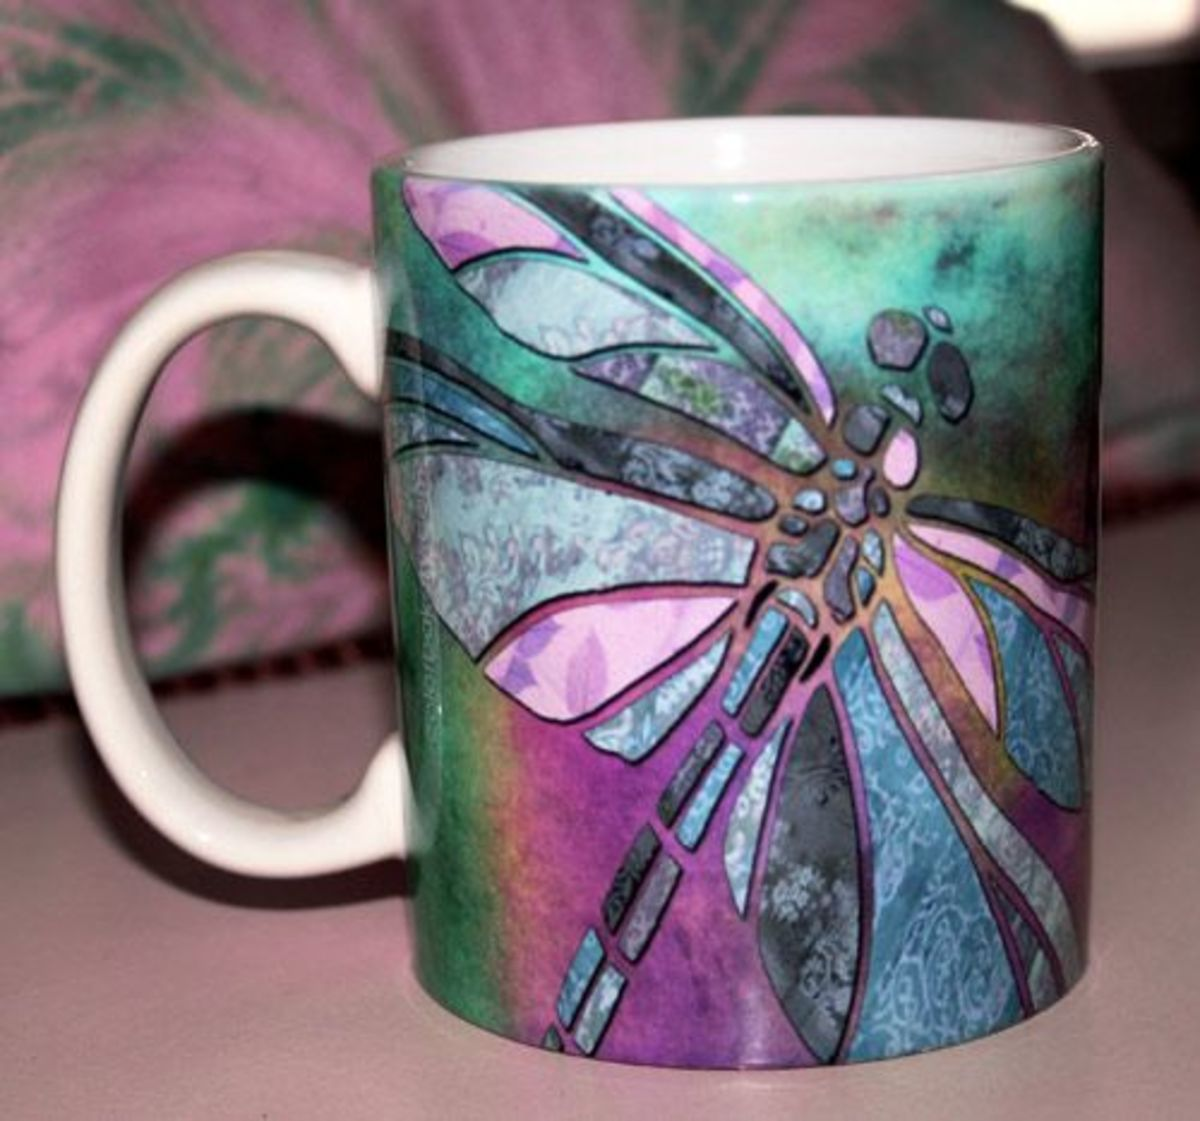 Beautiful pinks and purple and a dragonfly adorn this ceramic coffee mug